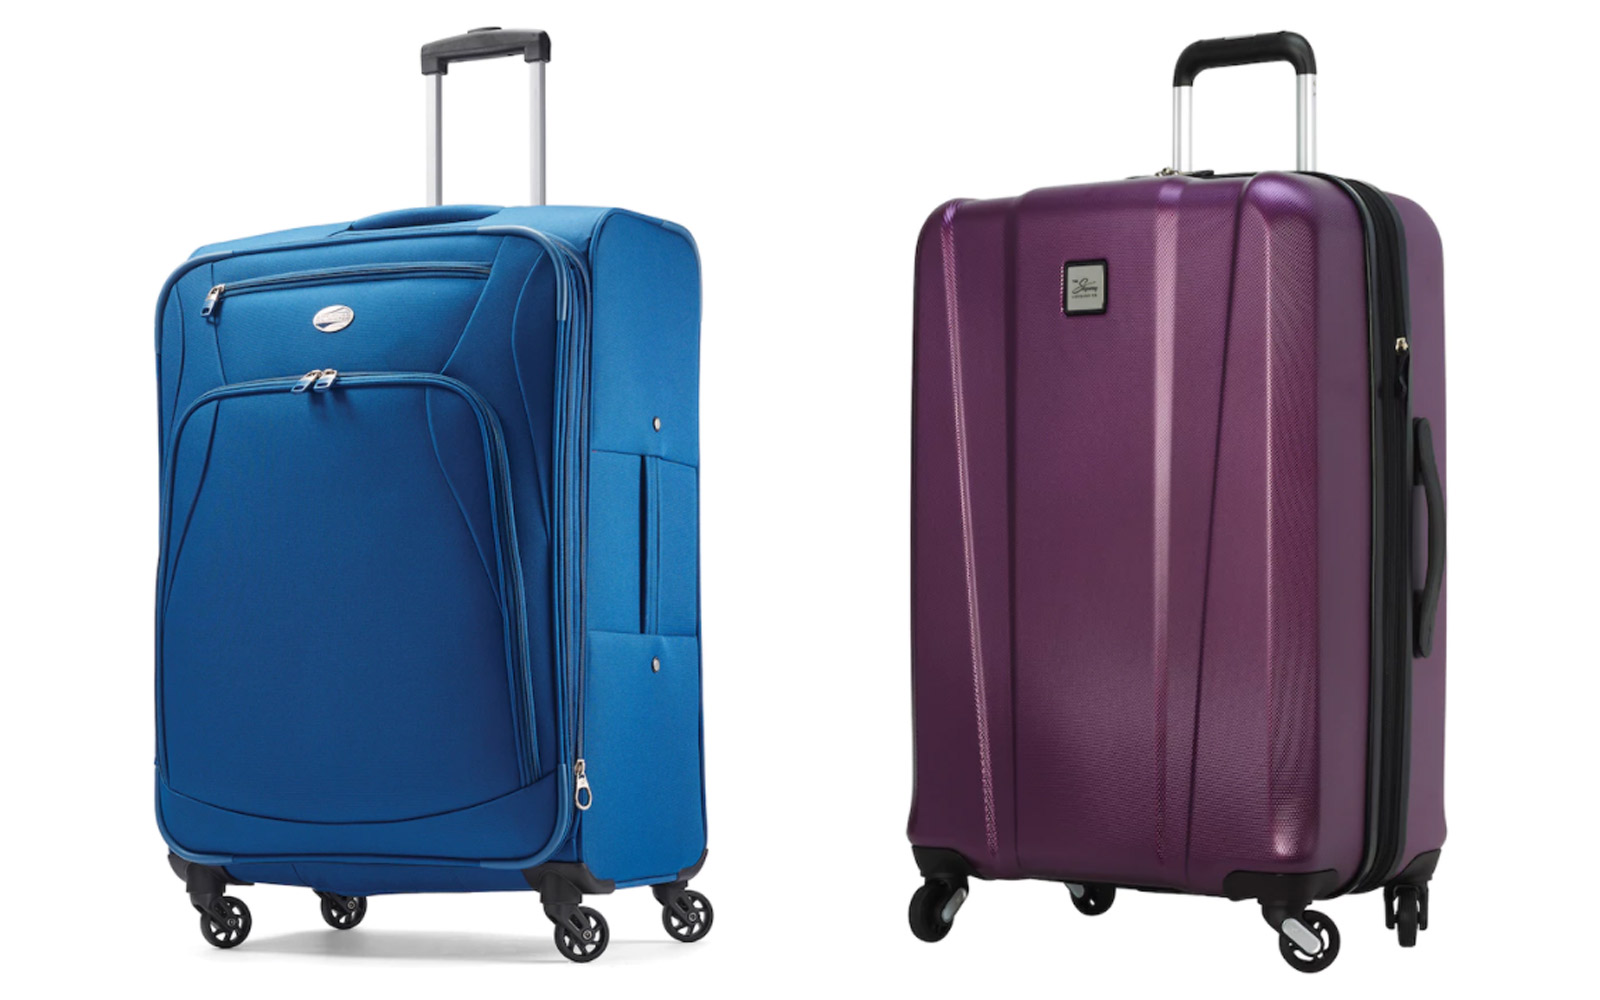 Get Up to 75% Off Luggage From Kohl's Online Black Friday Sale